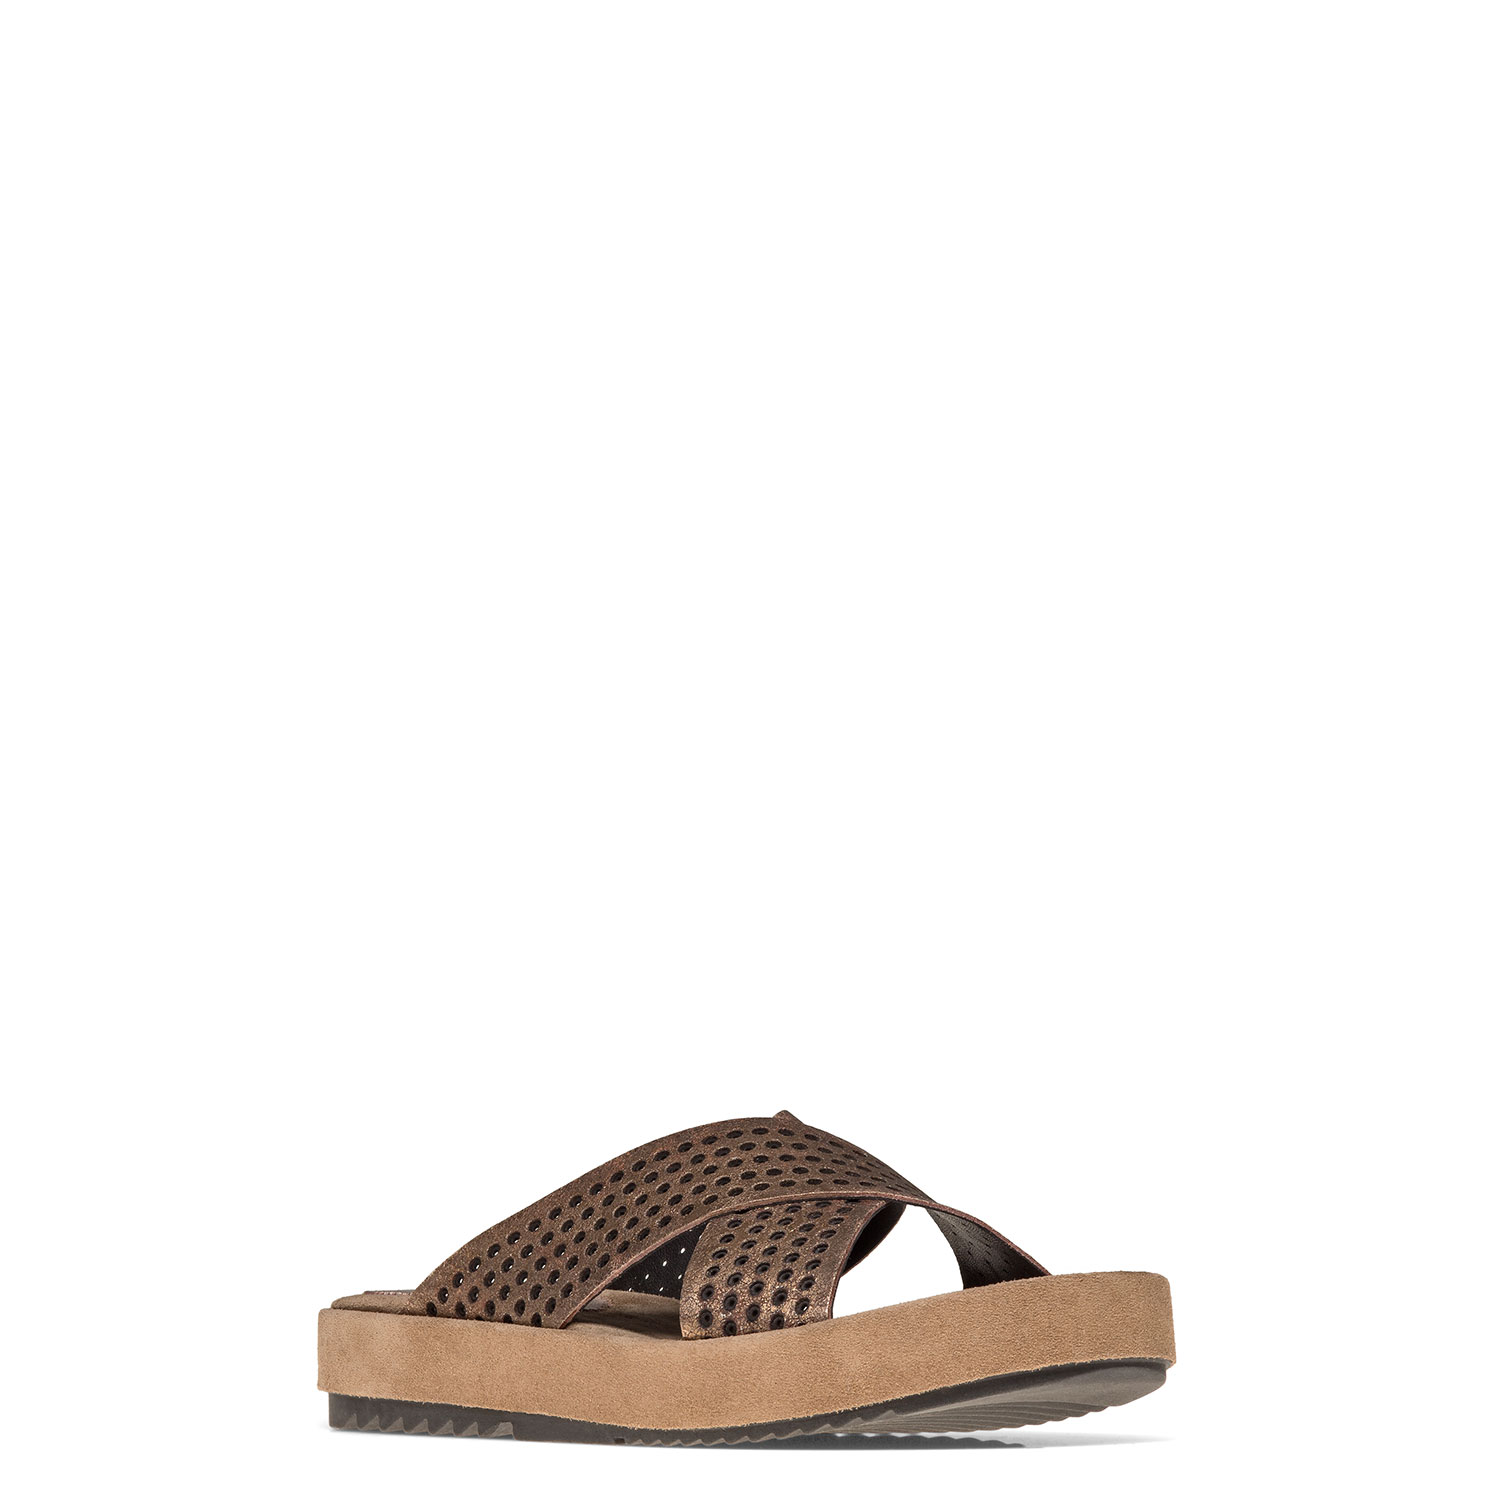 Women's sandals PAZOLINI TO-X2764-9